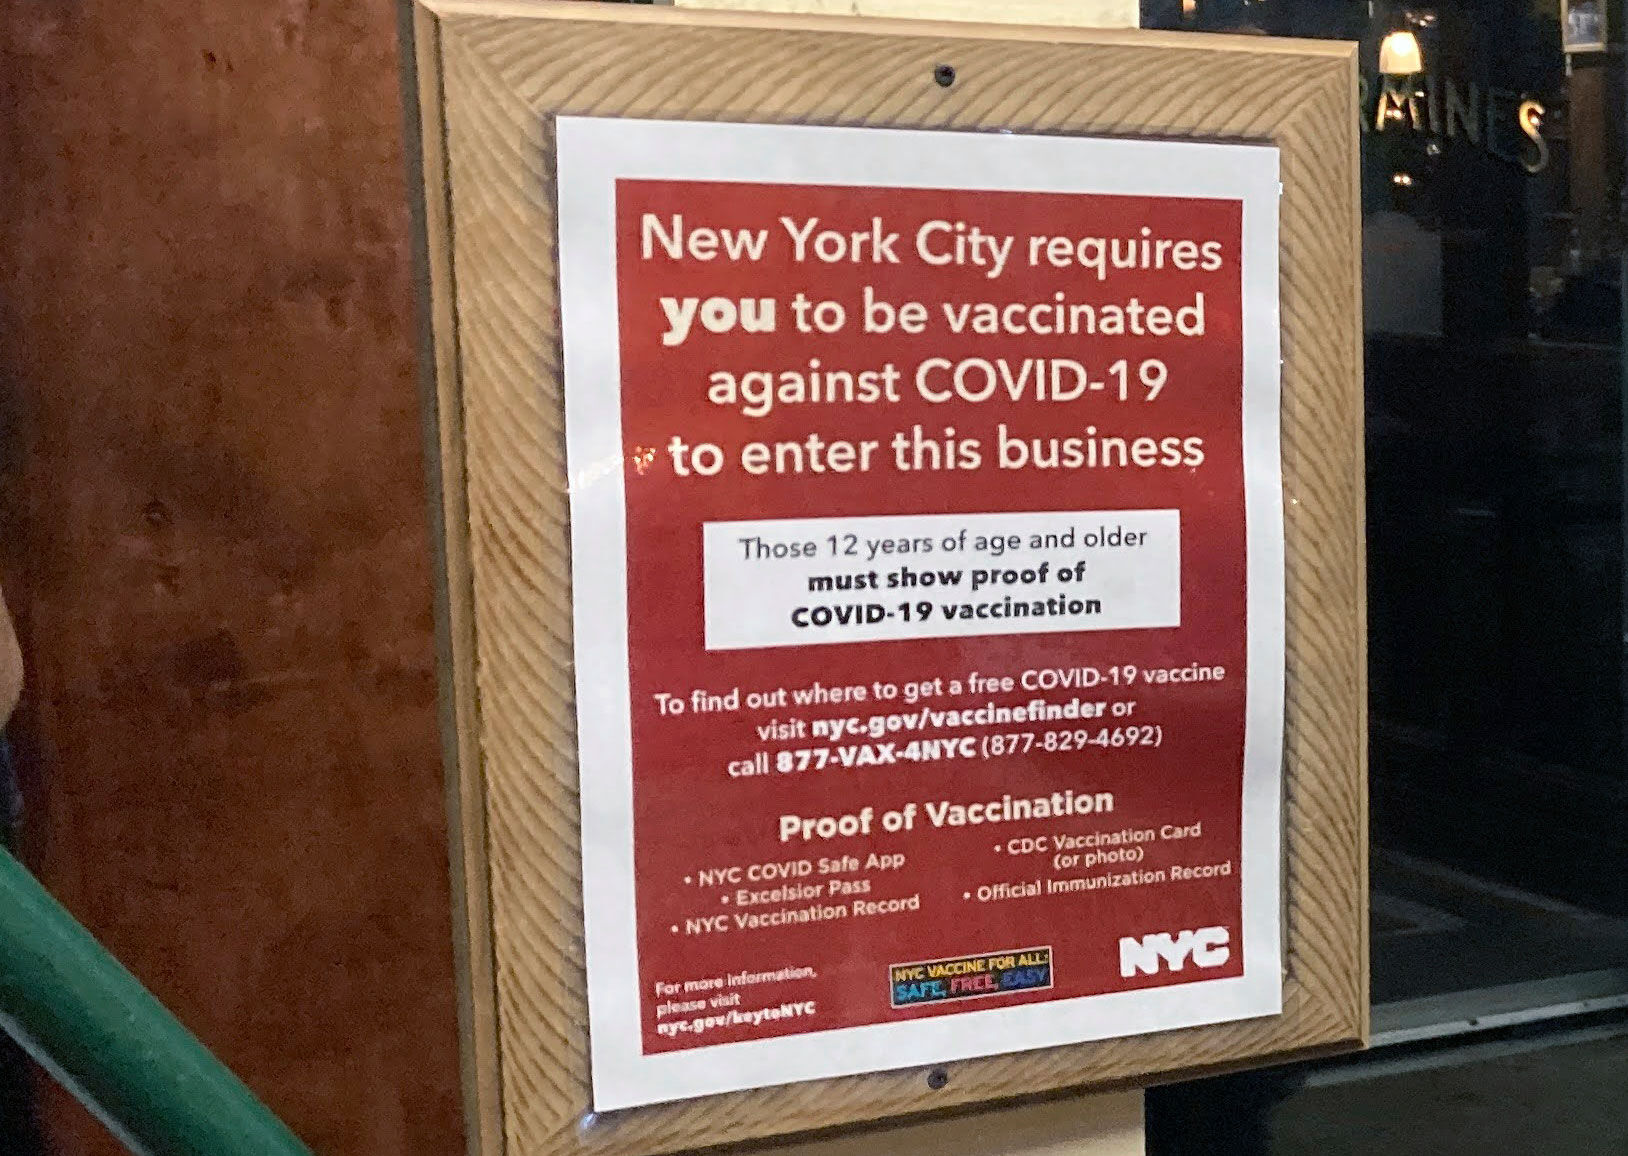 <p>A sign informs customers they must show proof of vaccination against COVID-19 to dine indoors at Carmine's Italian restaurant on the Upper West Side of Manhattan in New York City.</p>